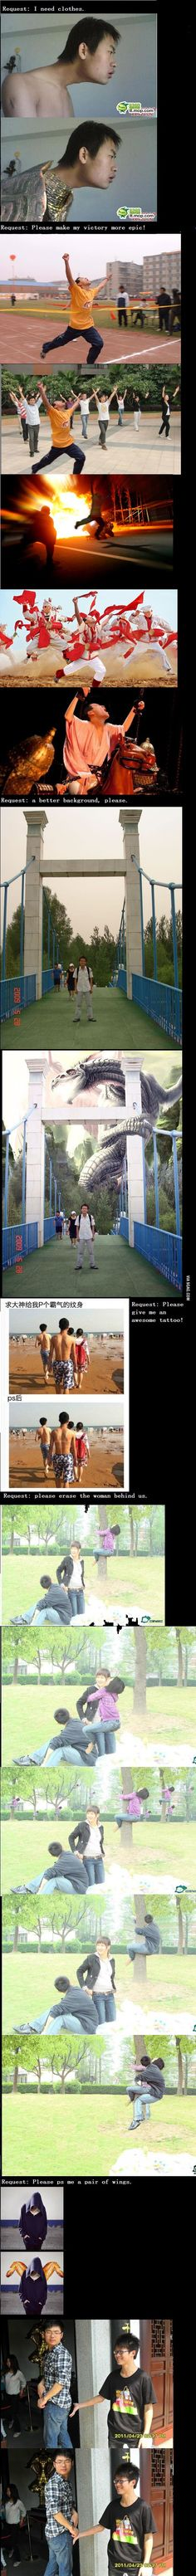 Another round of Chinese photoshop trolls